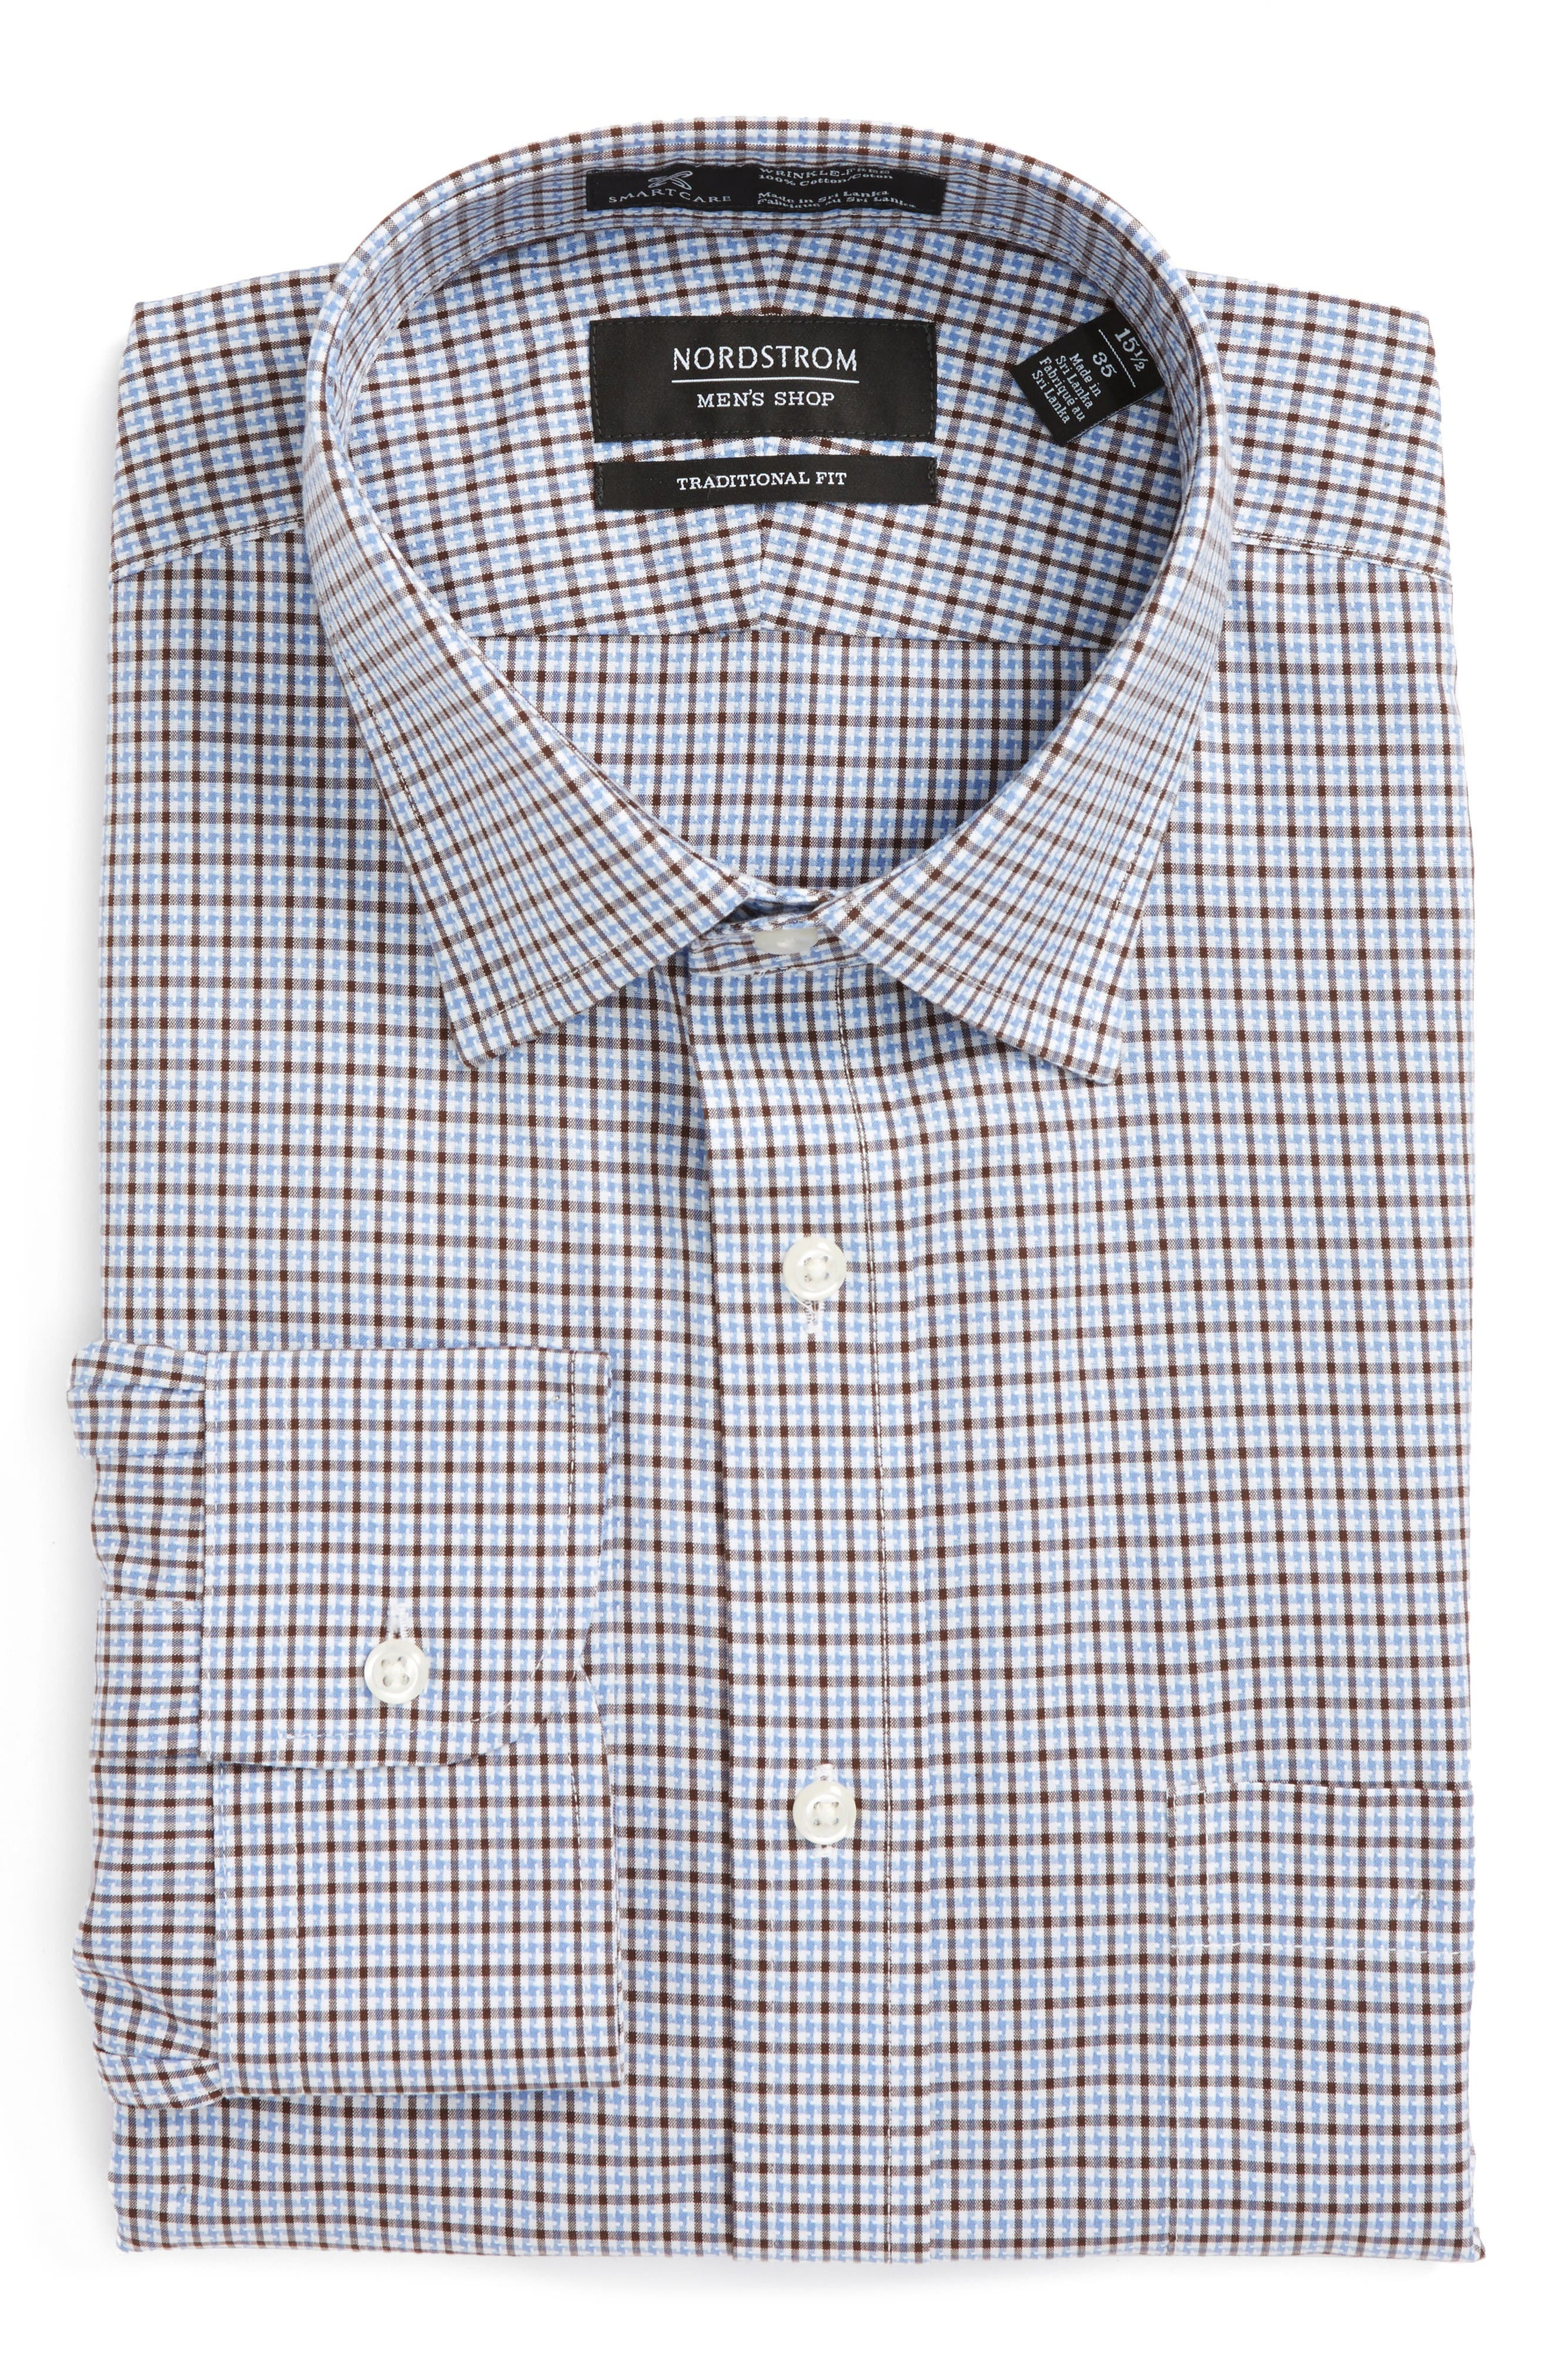 Nordstrom Men's Shop Smartcare™ Traditional Fit Check Dress Shirt